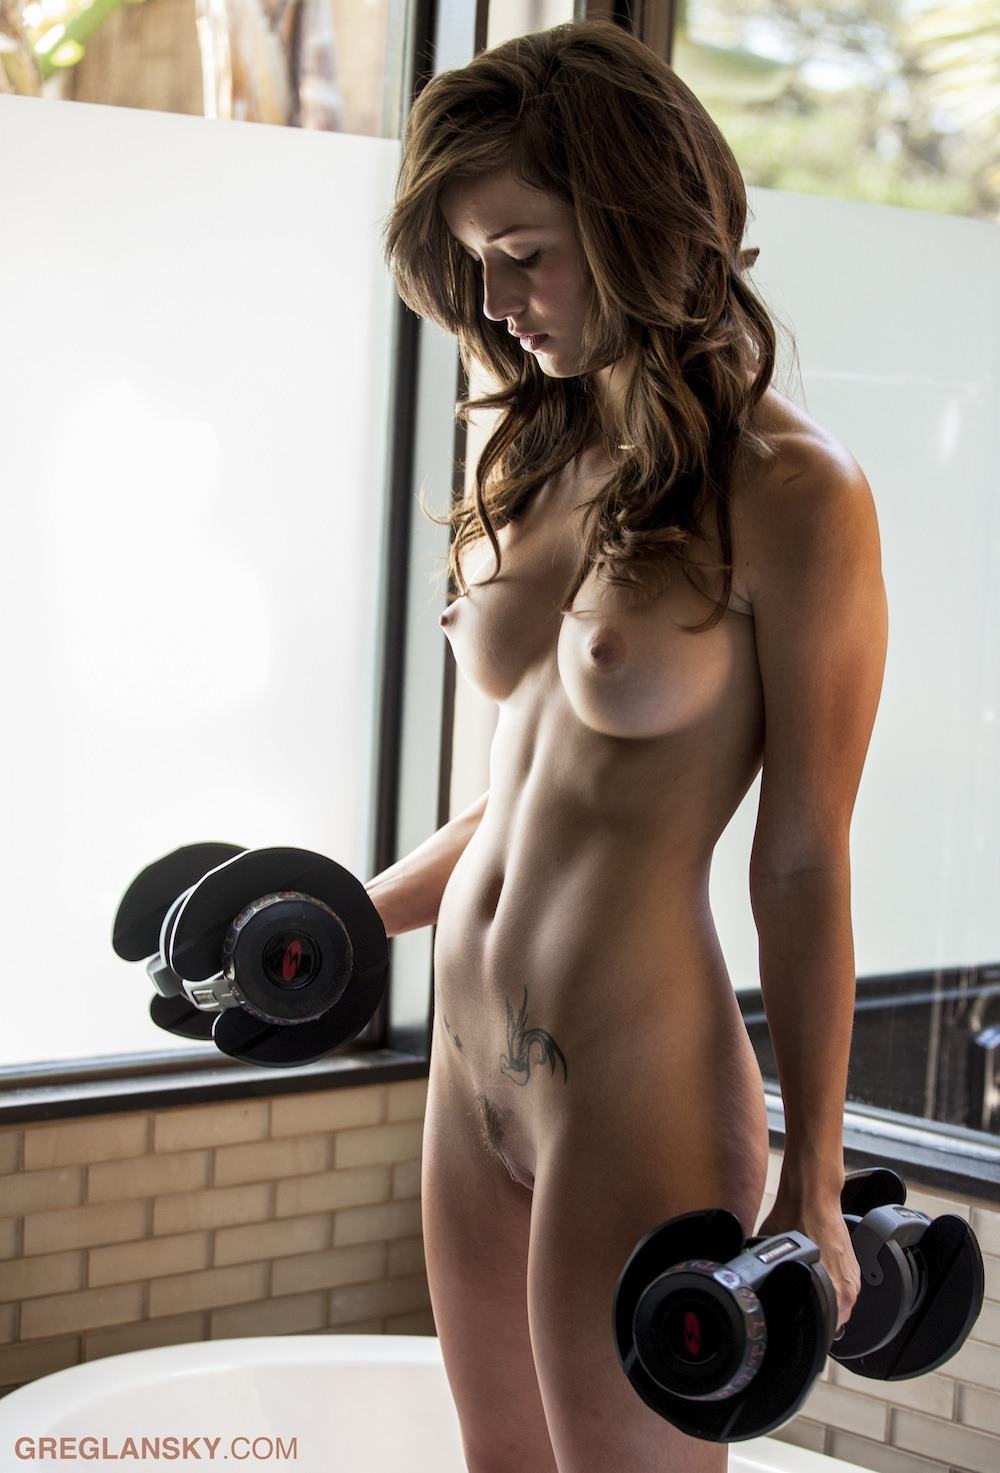 Fit Girls Nude photo 24